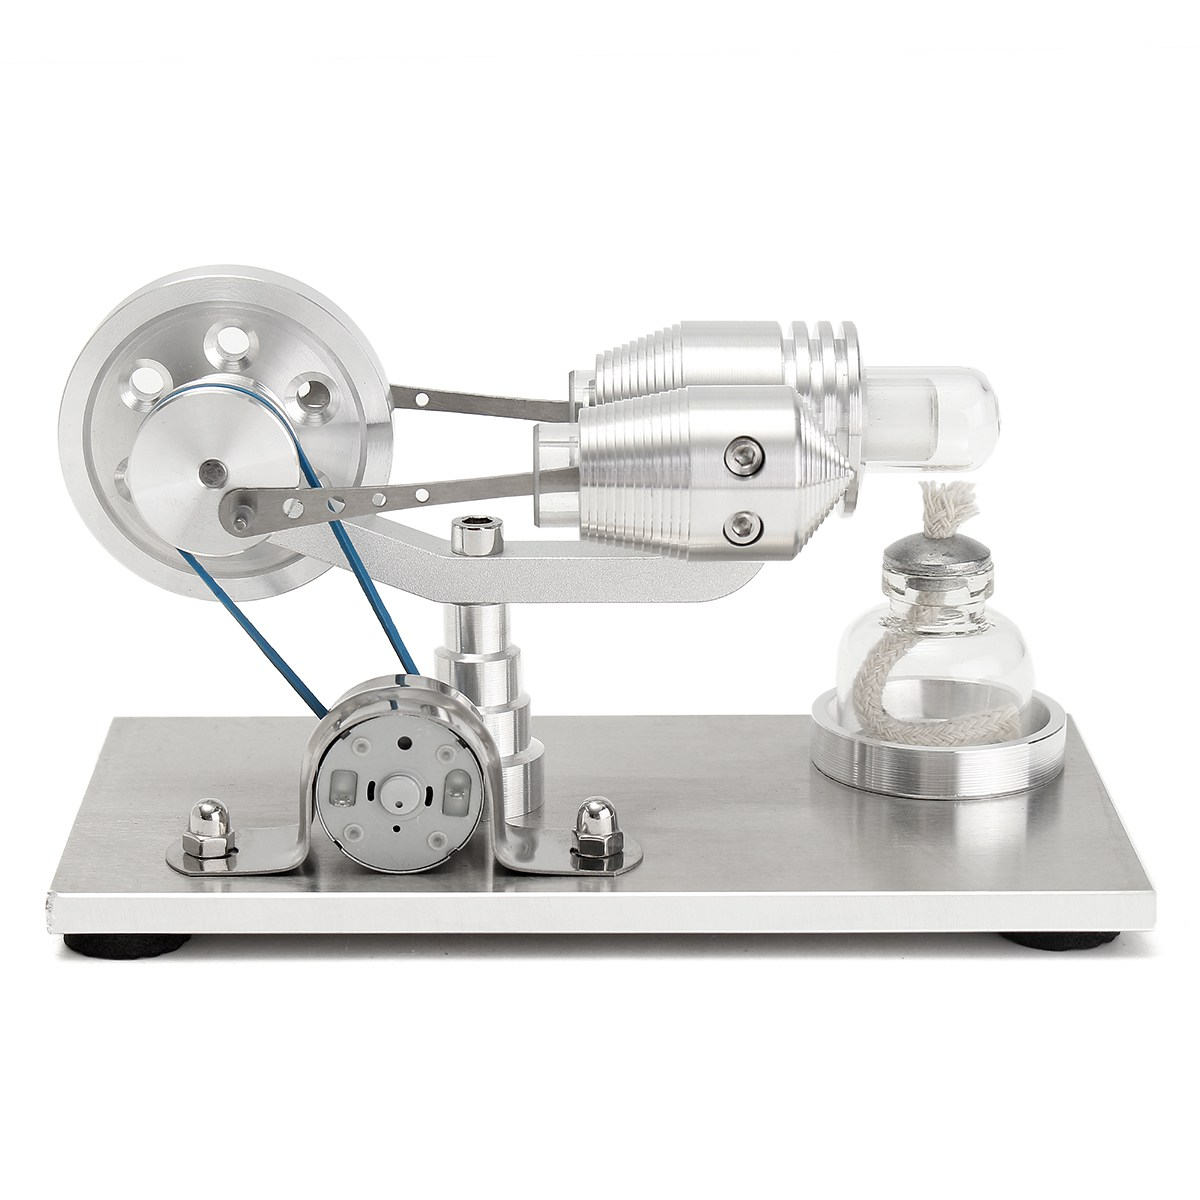 все цены на New Arrival Stainless steel Mini Hot Air Stirling Engine Motor Model Educational Toy Science Experiment Kit Set For Chuldren